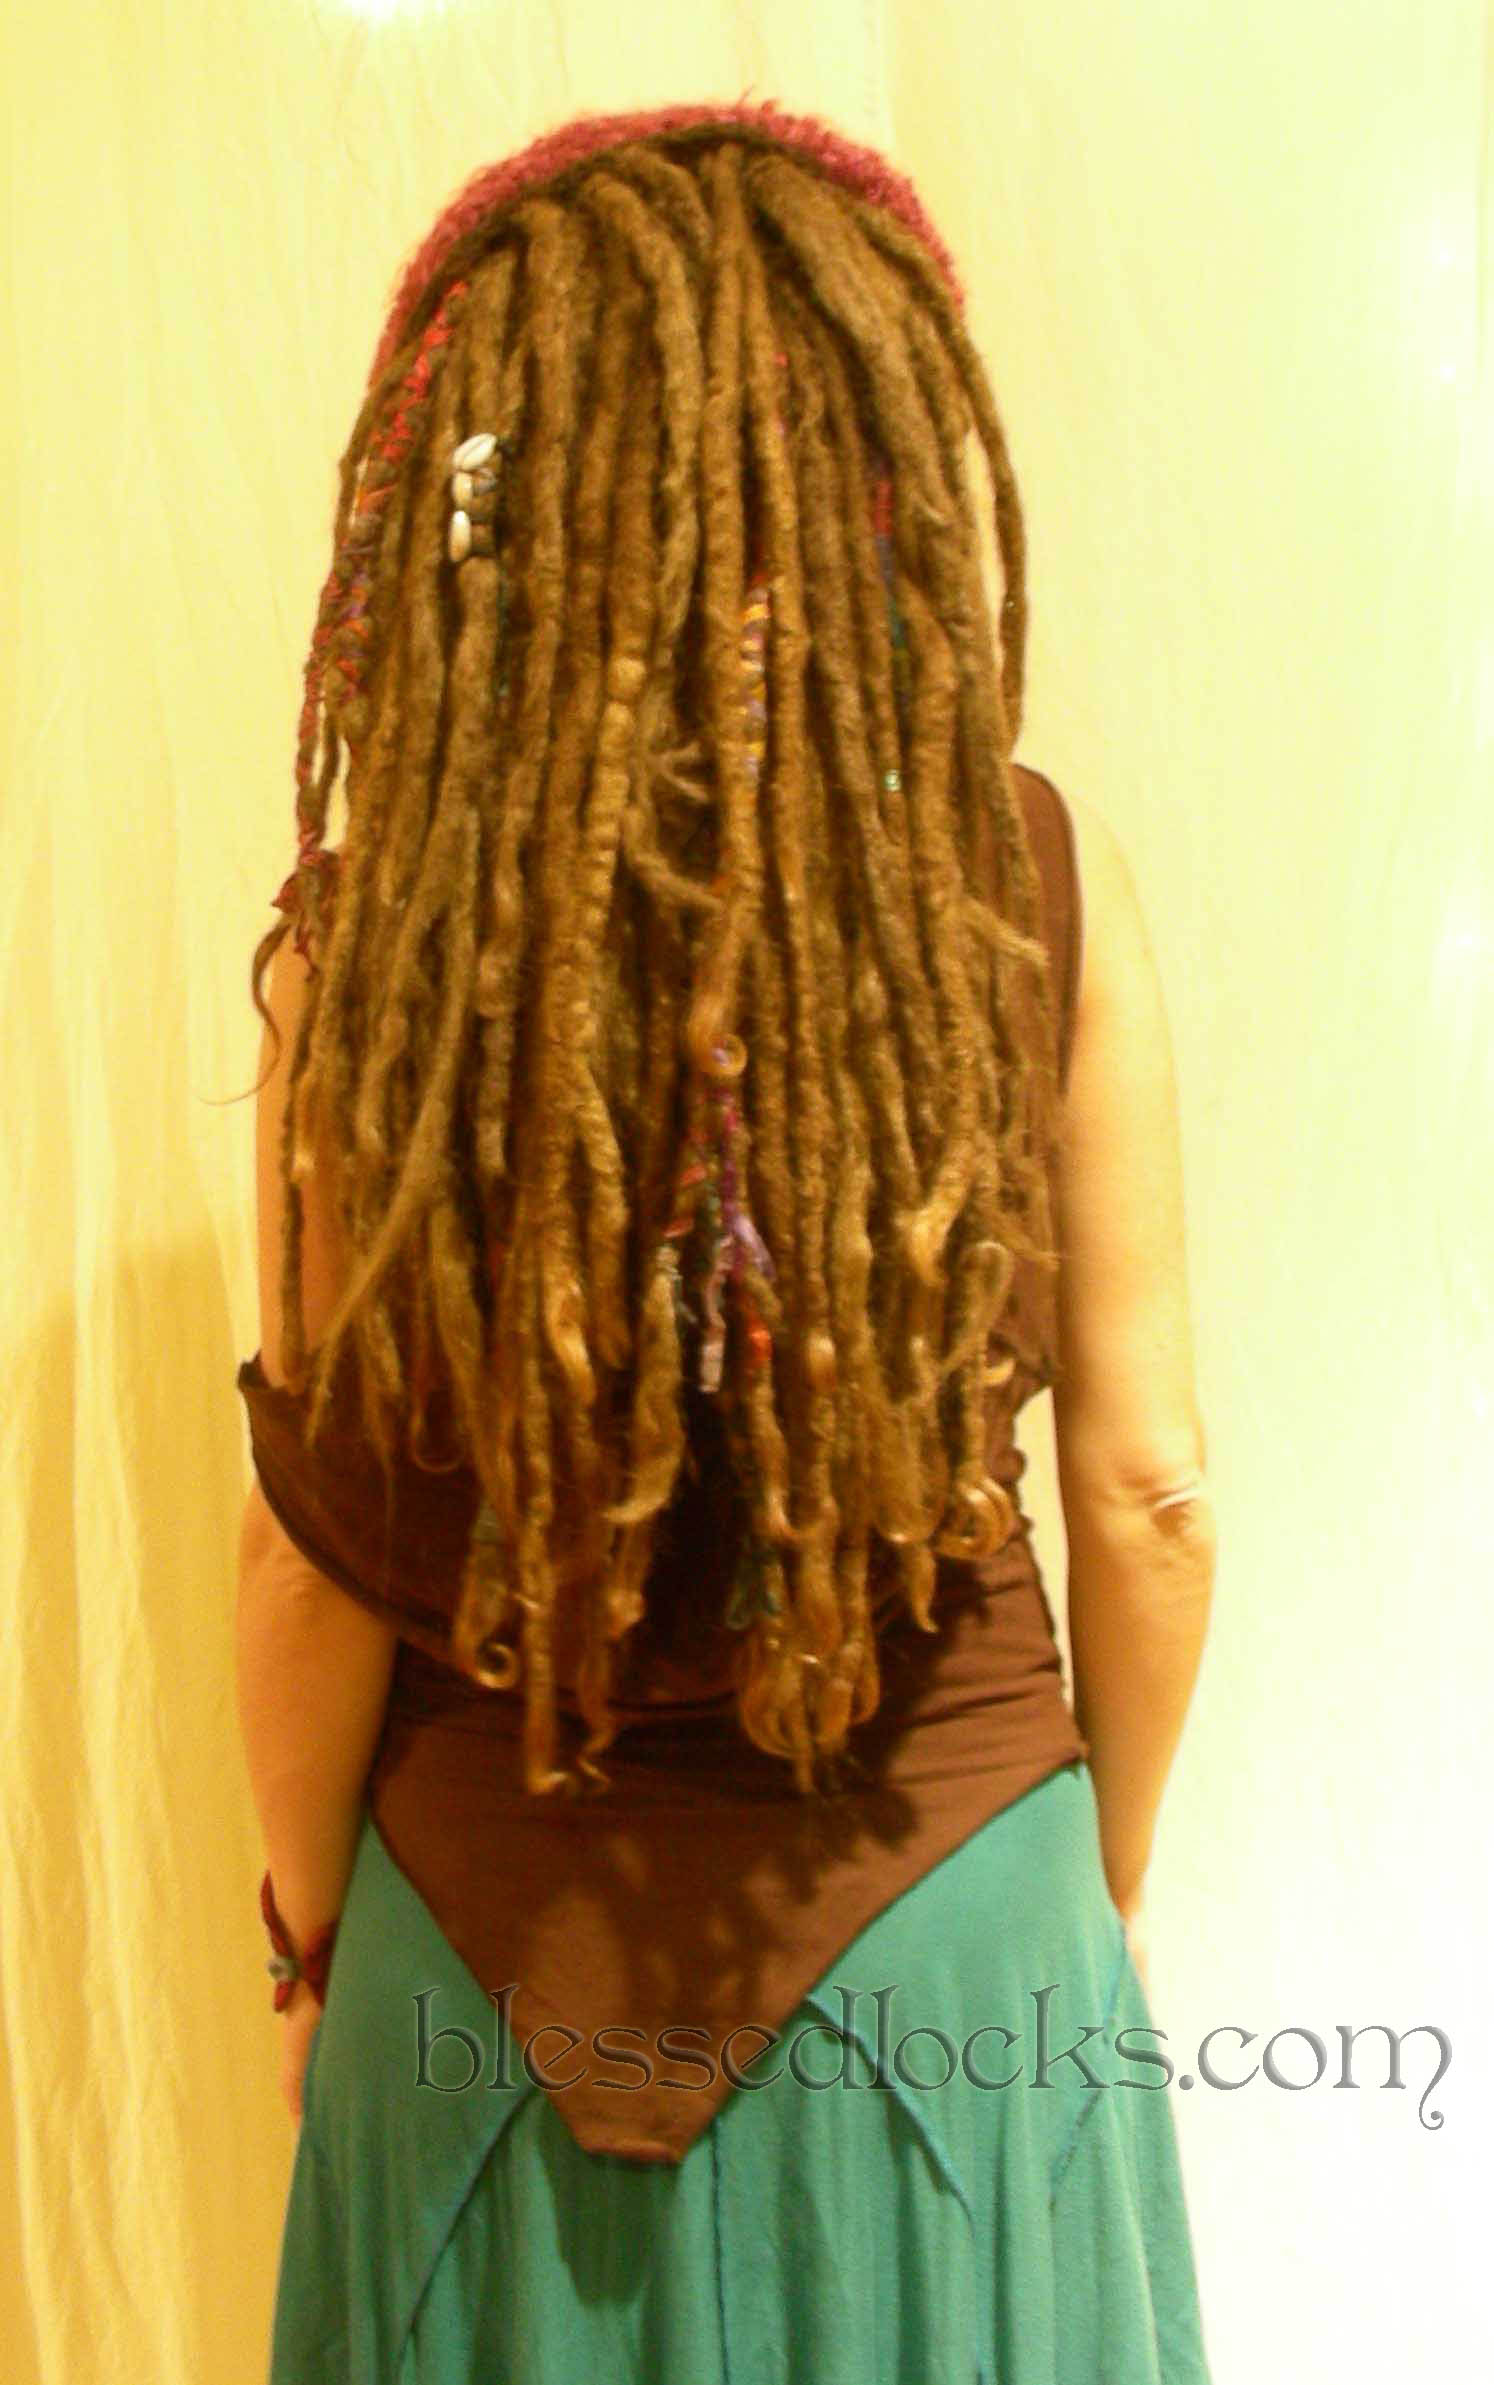 Blessed Locks Custom Dreadlock Extensions And Falls From